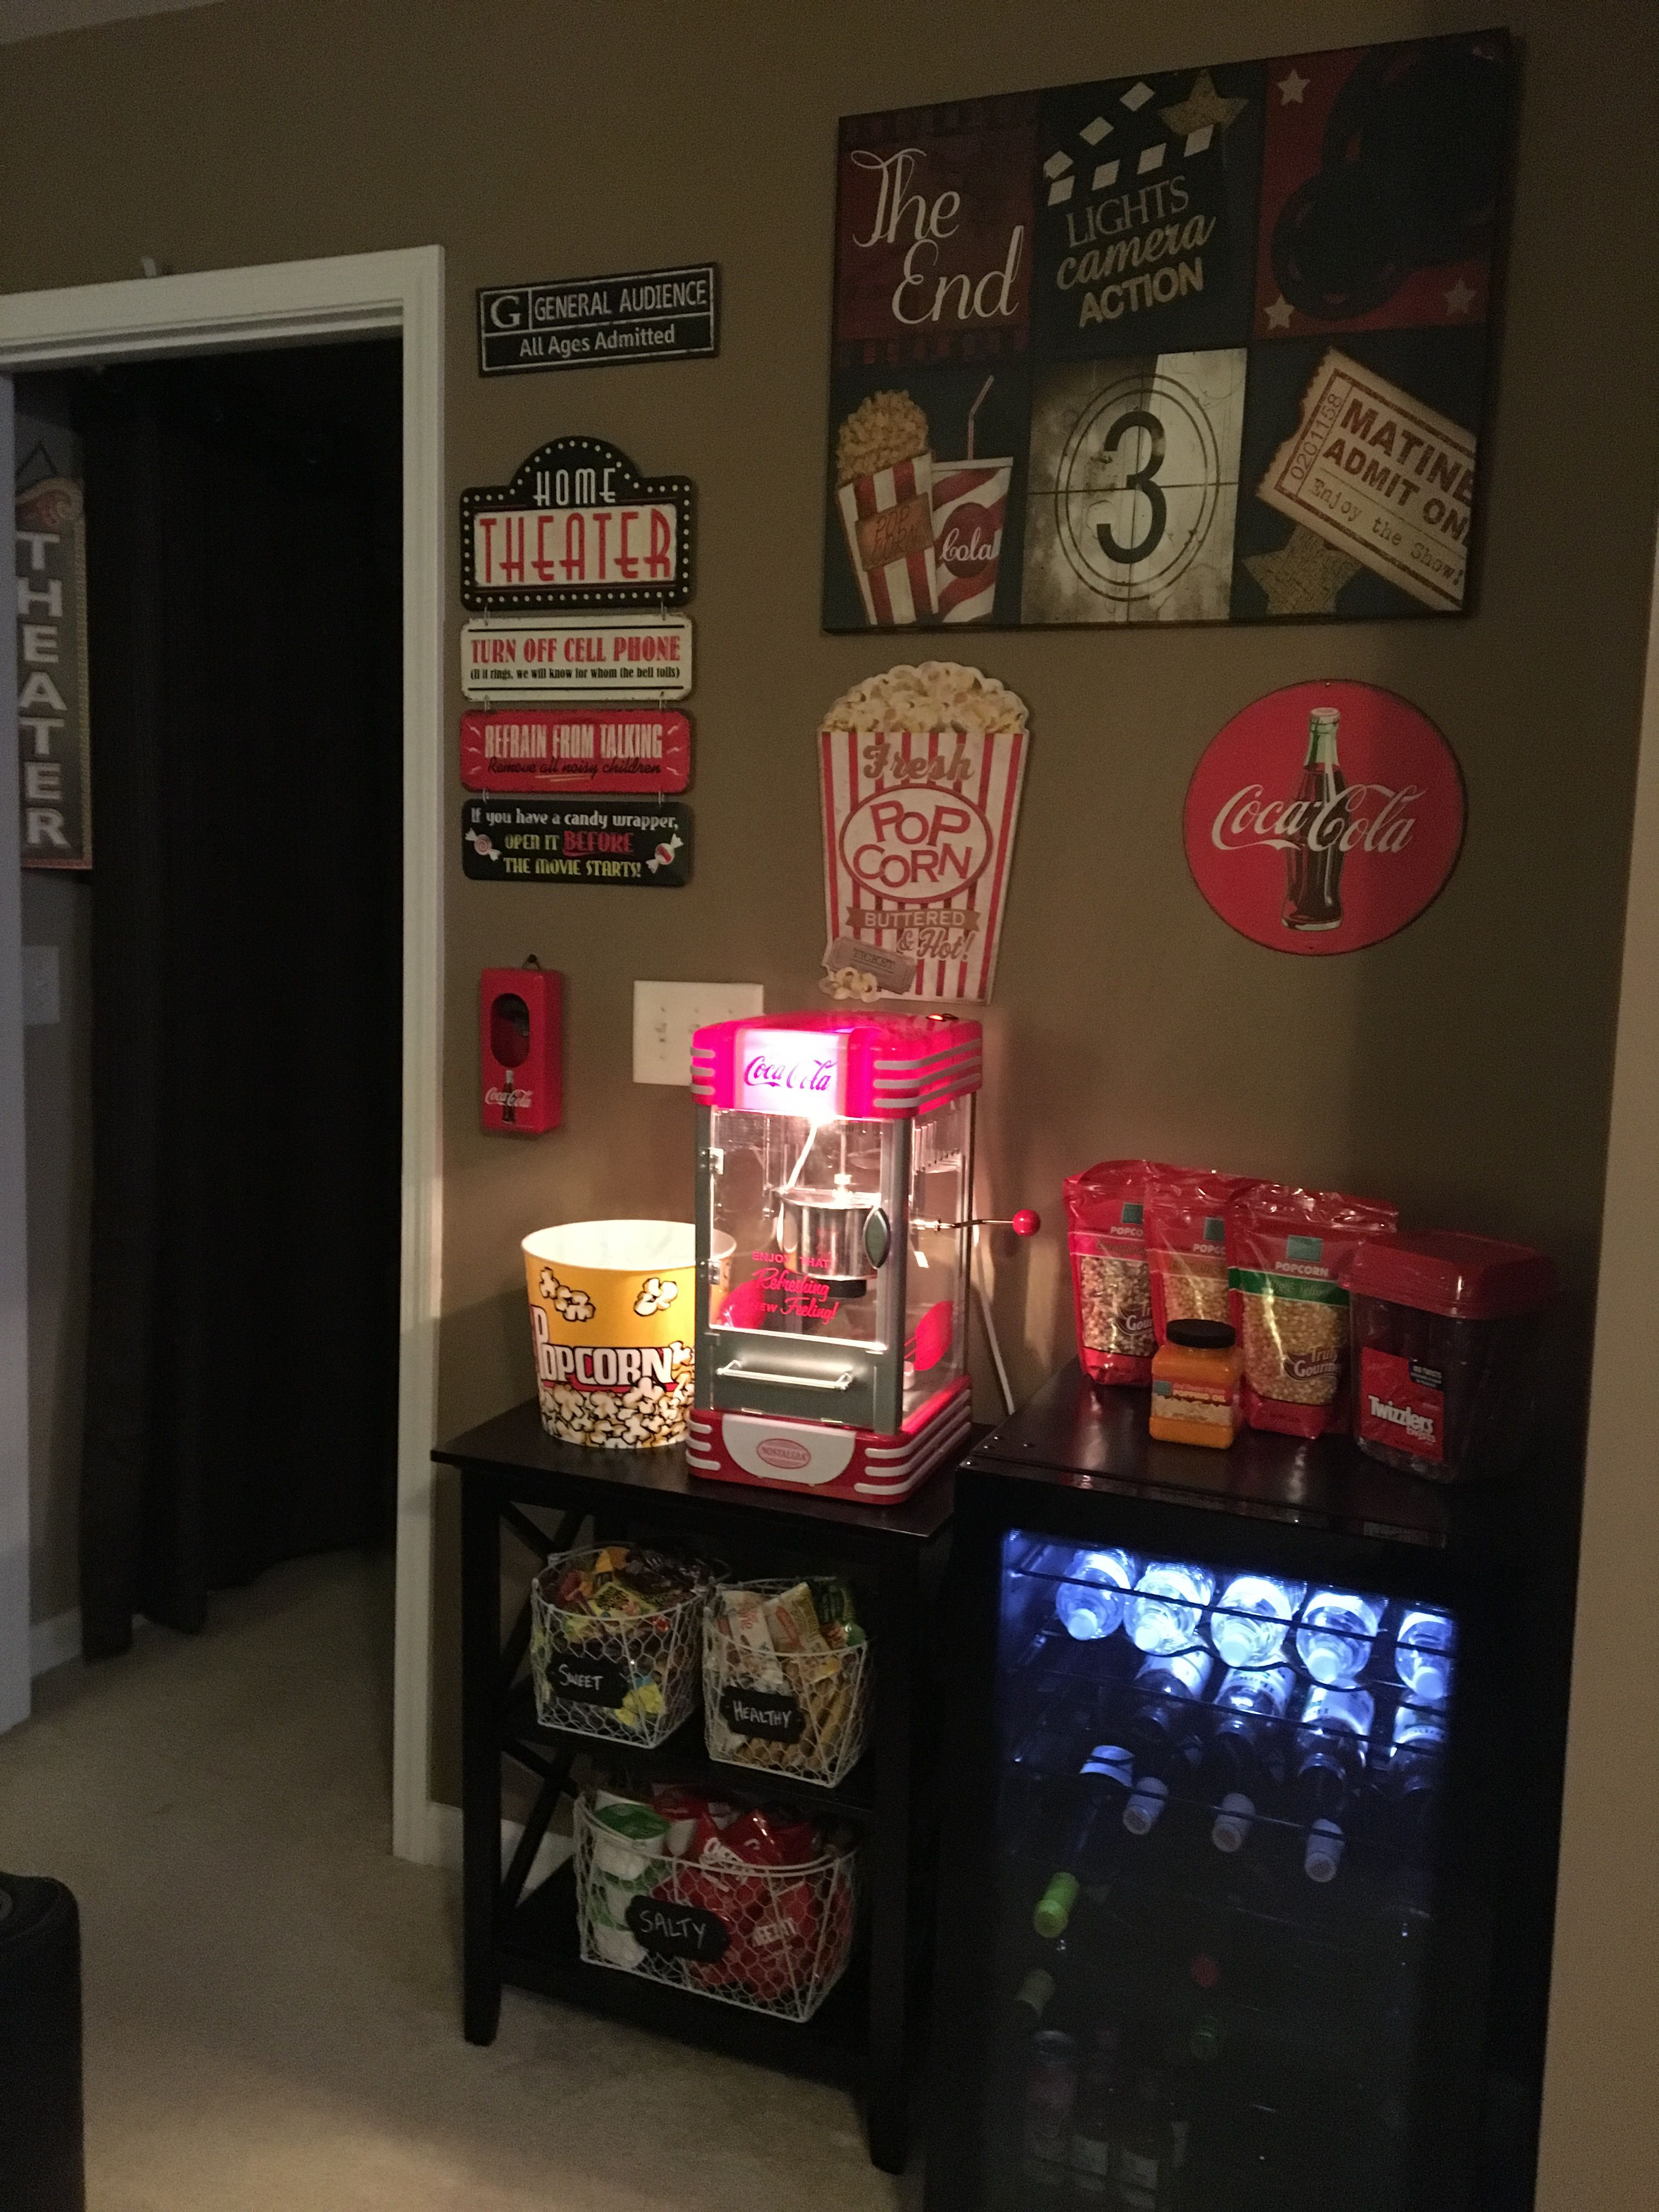 Home Movie Theater Concession Stand